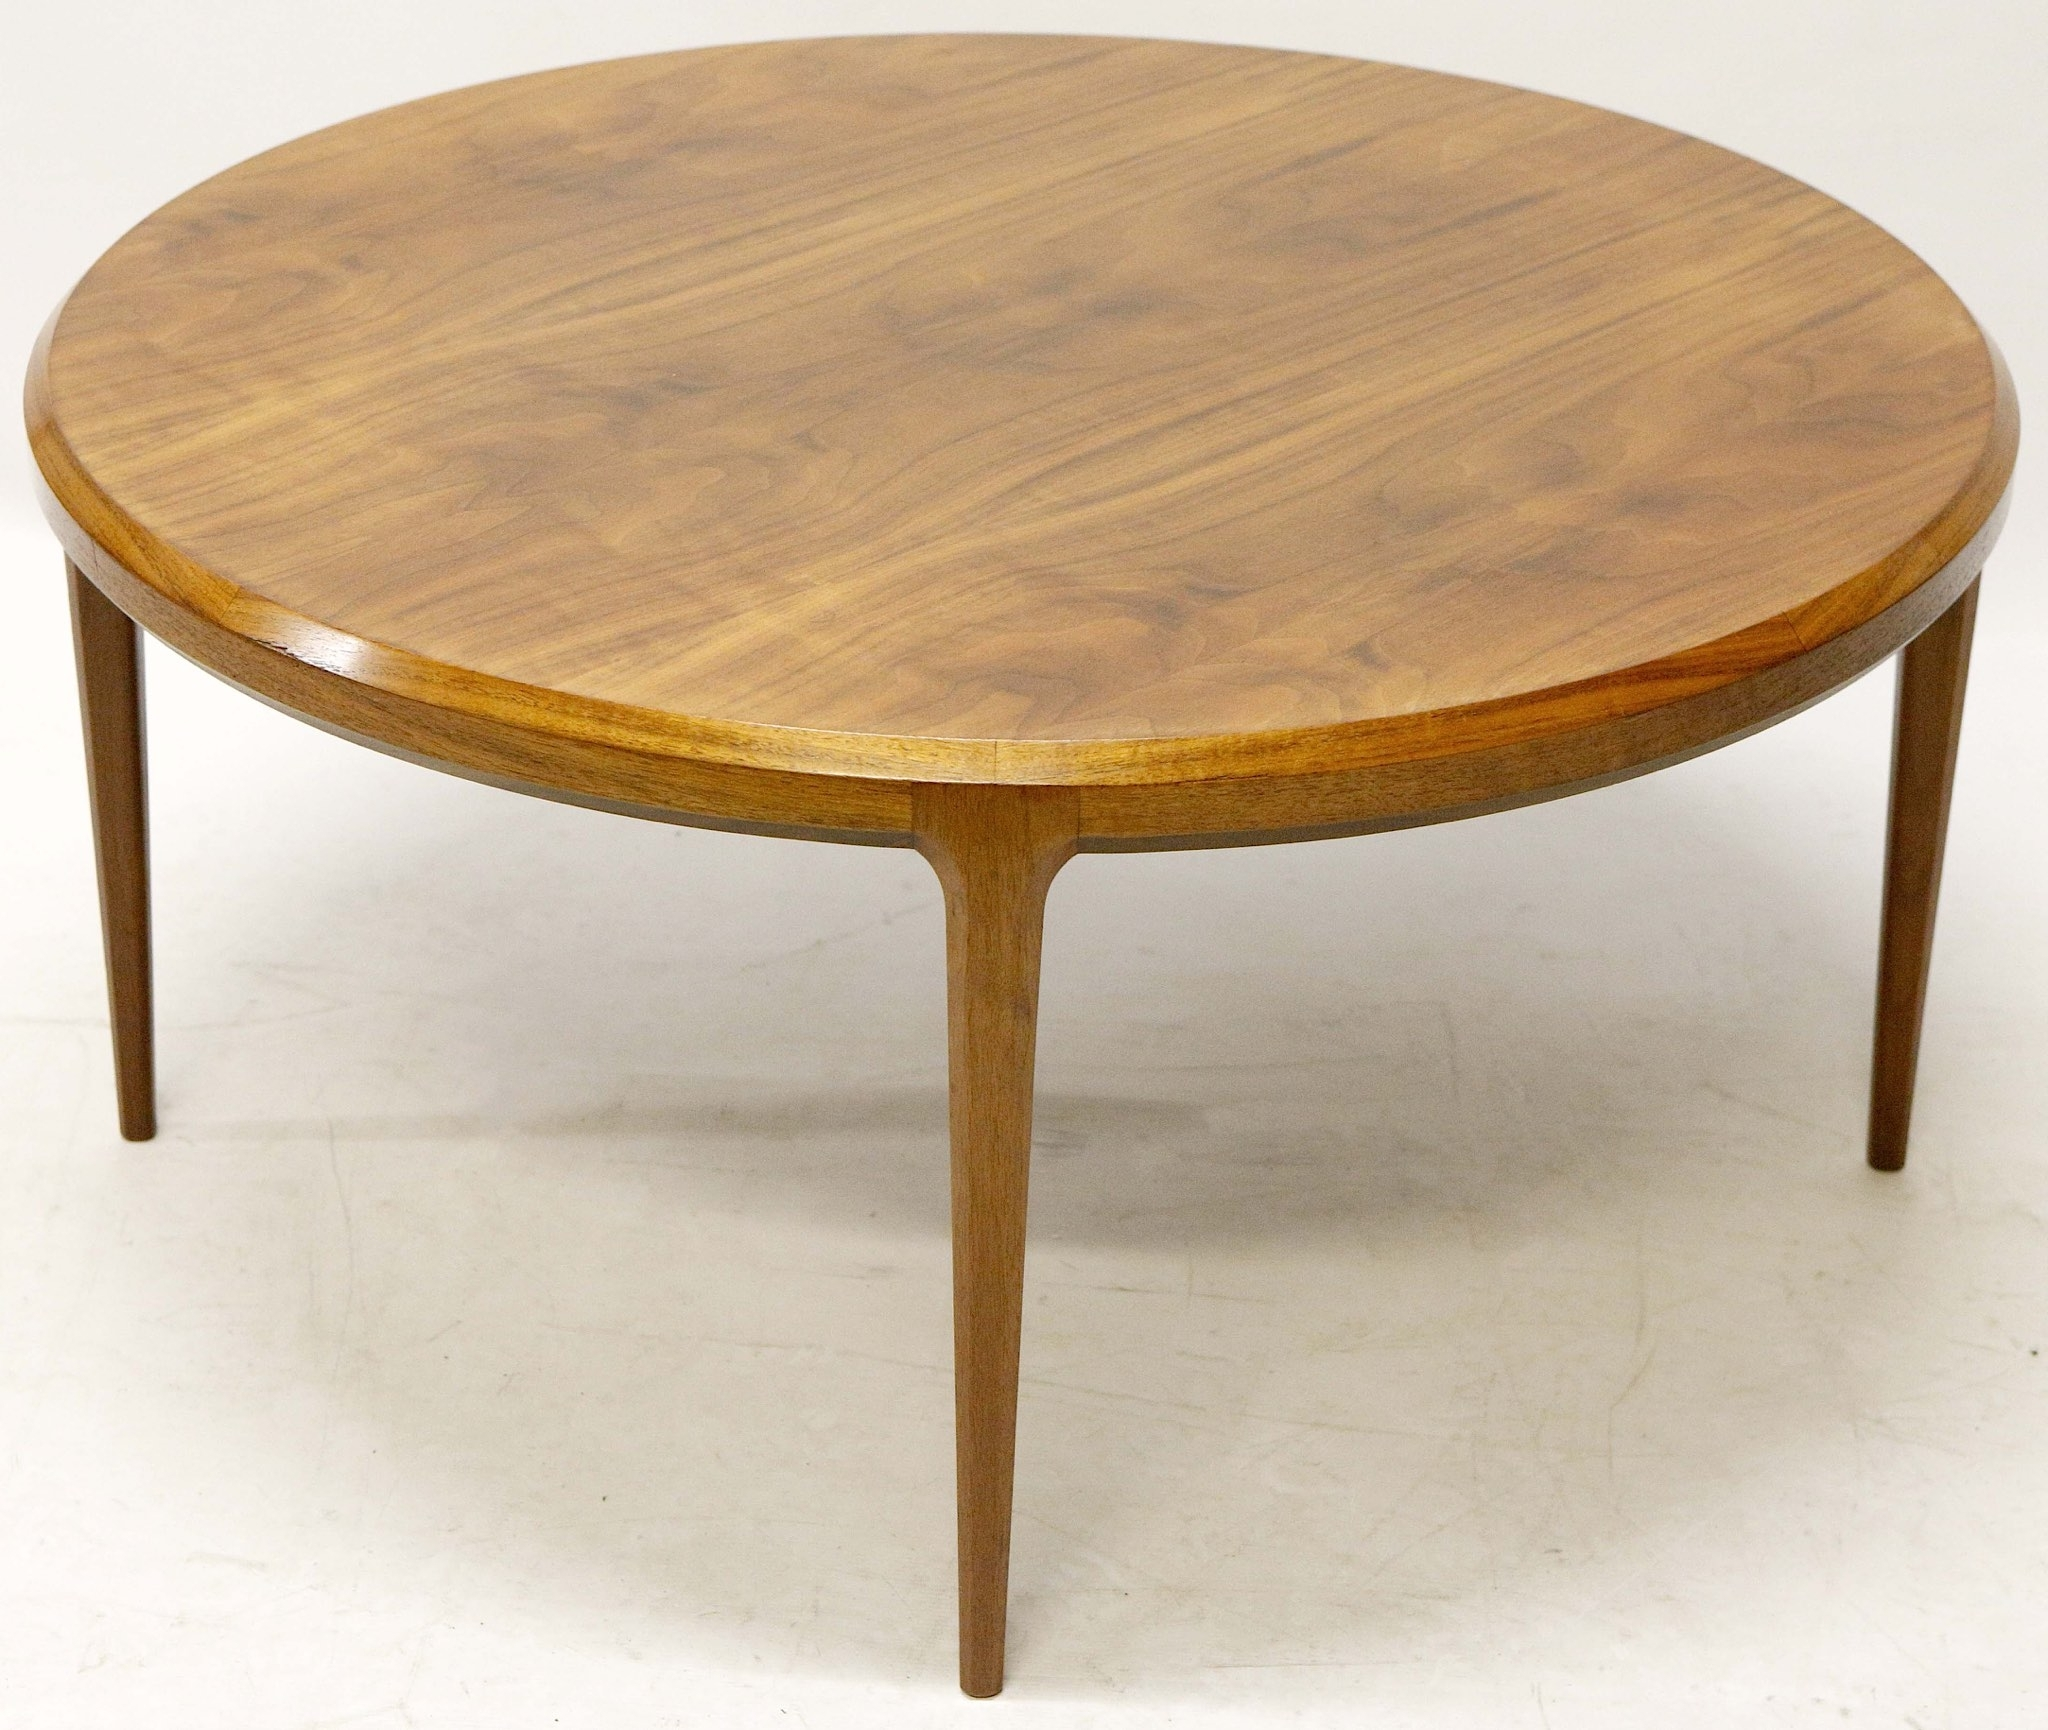 Johannes Andersen For Silkeborg Denmark, C. 1960, A Circular Teak For Most Popular Round Teak Coffee Tables (Gallery 11 of 20)